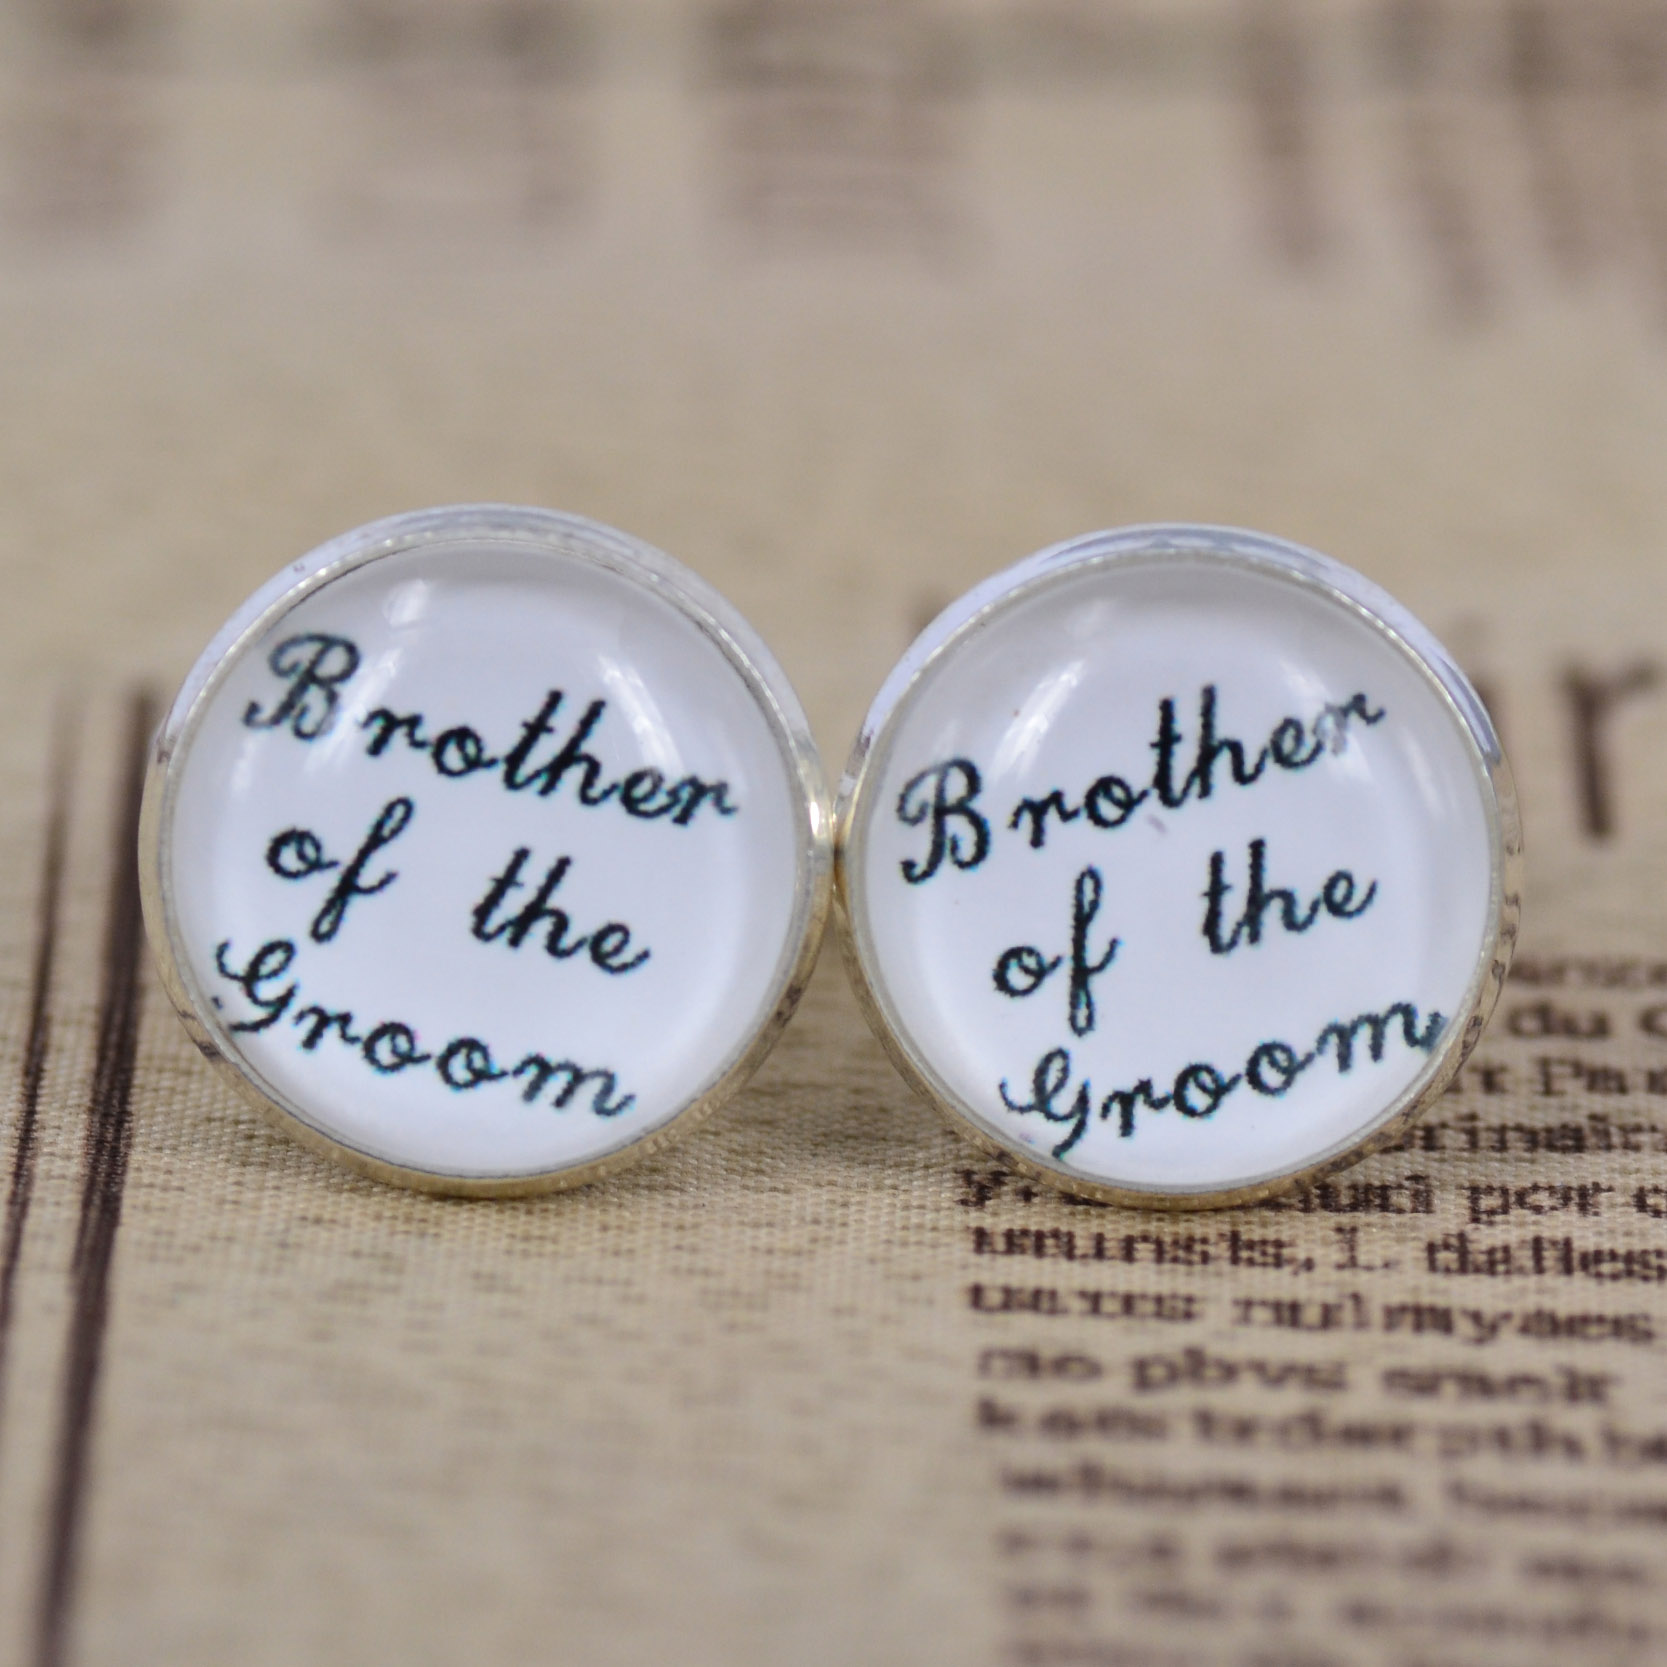 Special Wedding Gift For Brother : ... Brother of the groom Groomsmen Cufflinks Great Groomsmen Wedding Gift